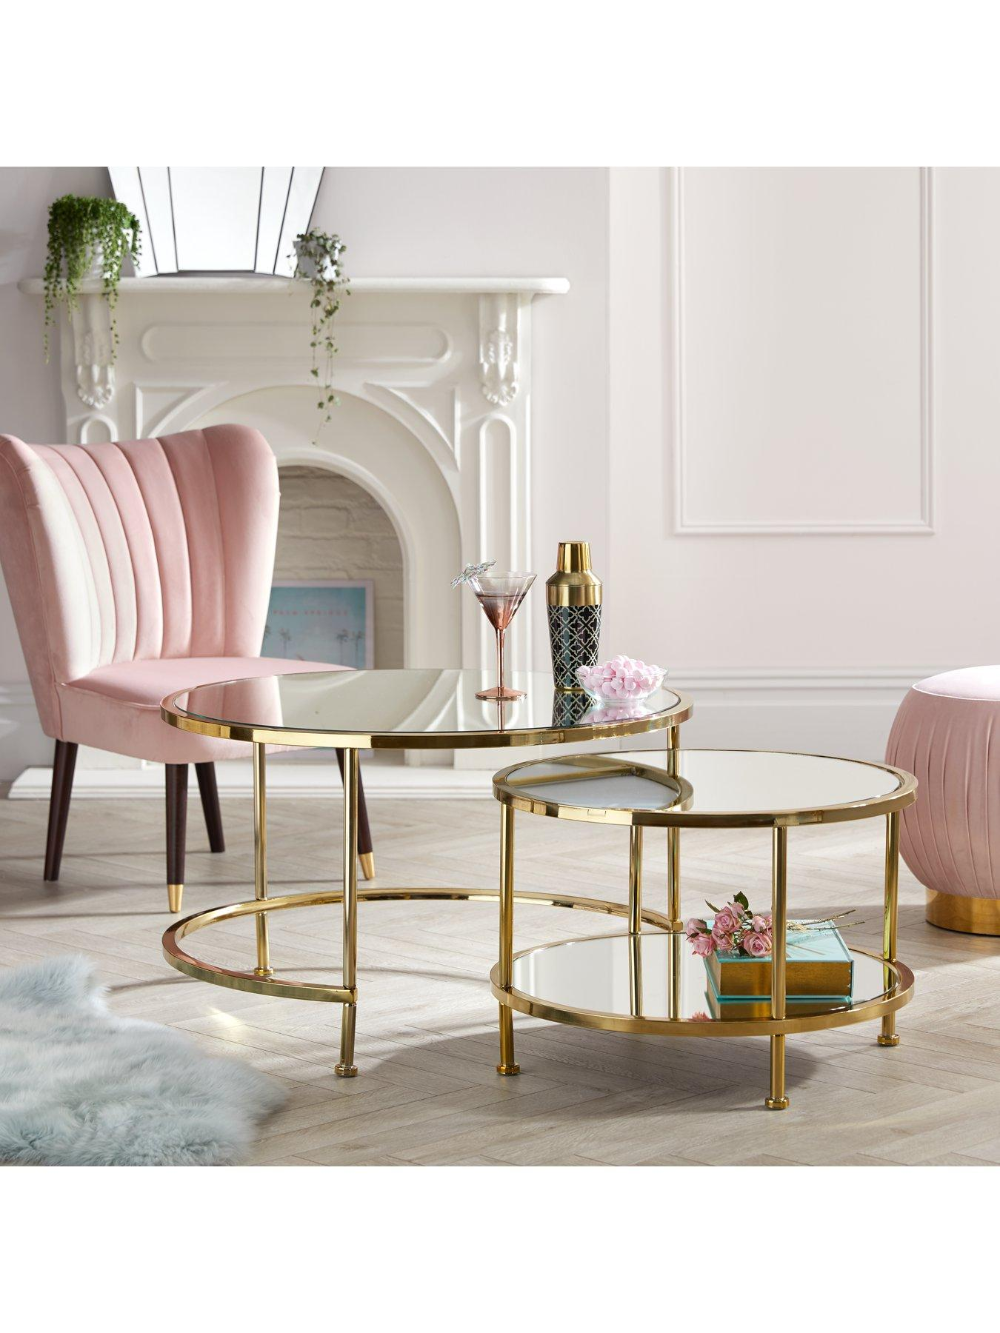 Aruba Nest Coffee Tables Coffee Table Gold Coffee Table Gold Living Room [ 1333 x 1000 Pixel ]